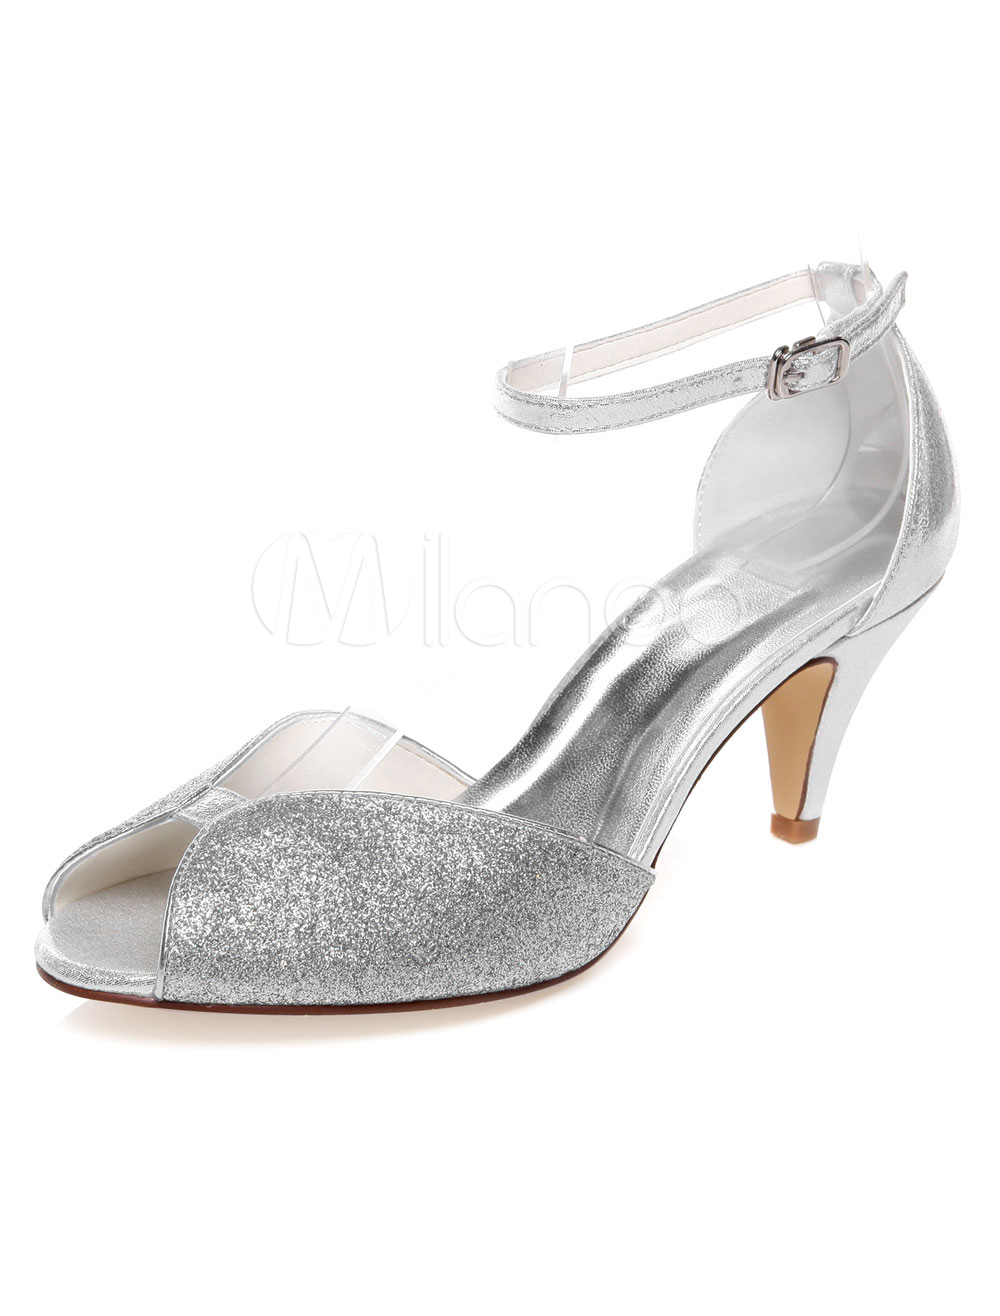 Silver Bridal Pumps Sequins PU Wedding Sandals for Women